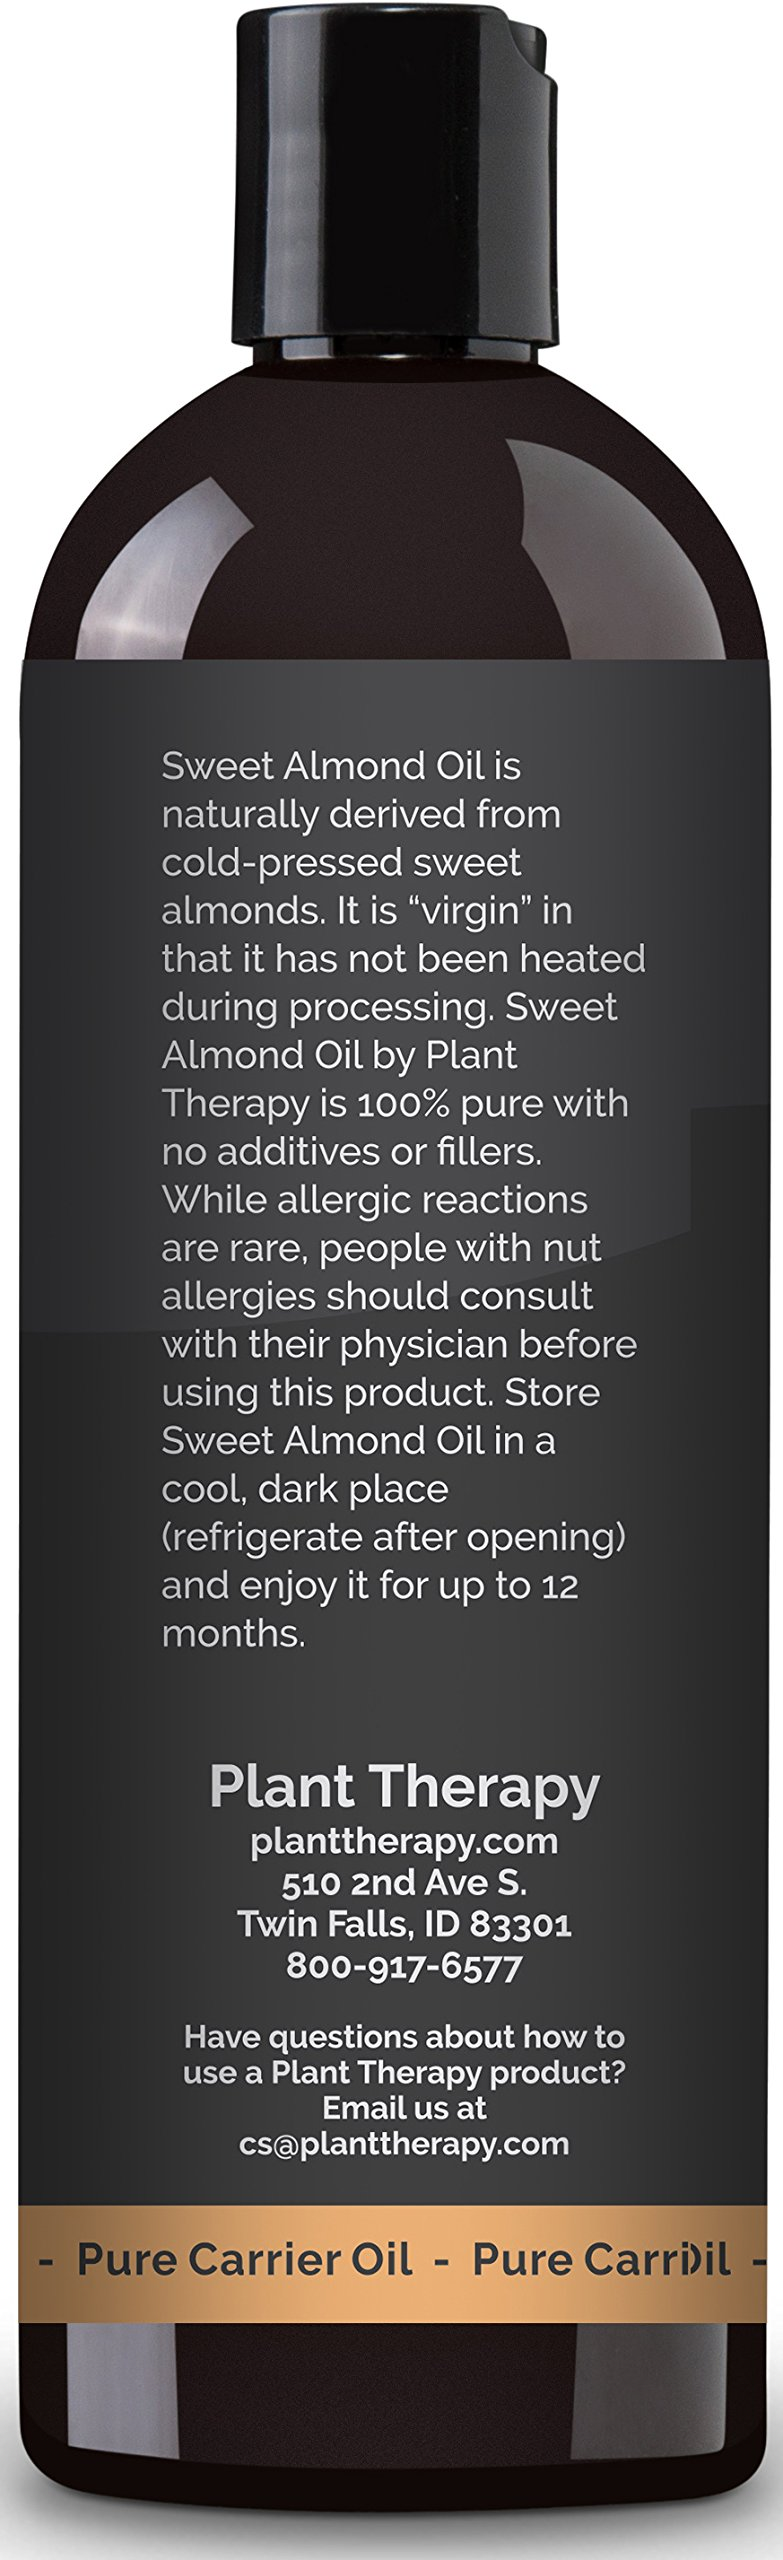 Plant Therapy Sweet Almond Carrier Oil + PUMP. A Base Oil for Aromatherapy, Essential Oil or Massage Use. 16 oz. by Plant Therapy (Image #3)